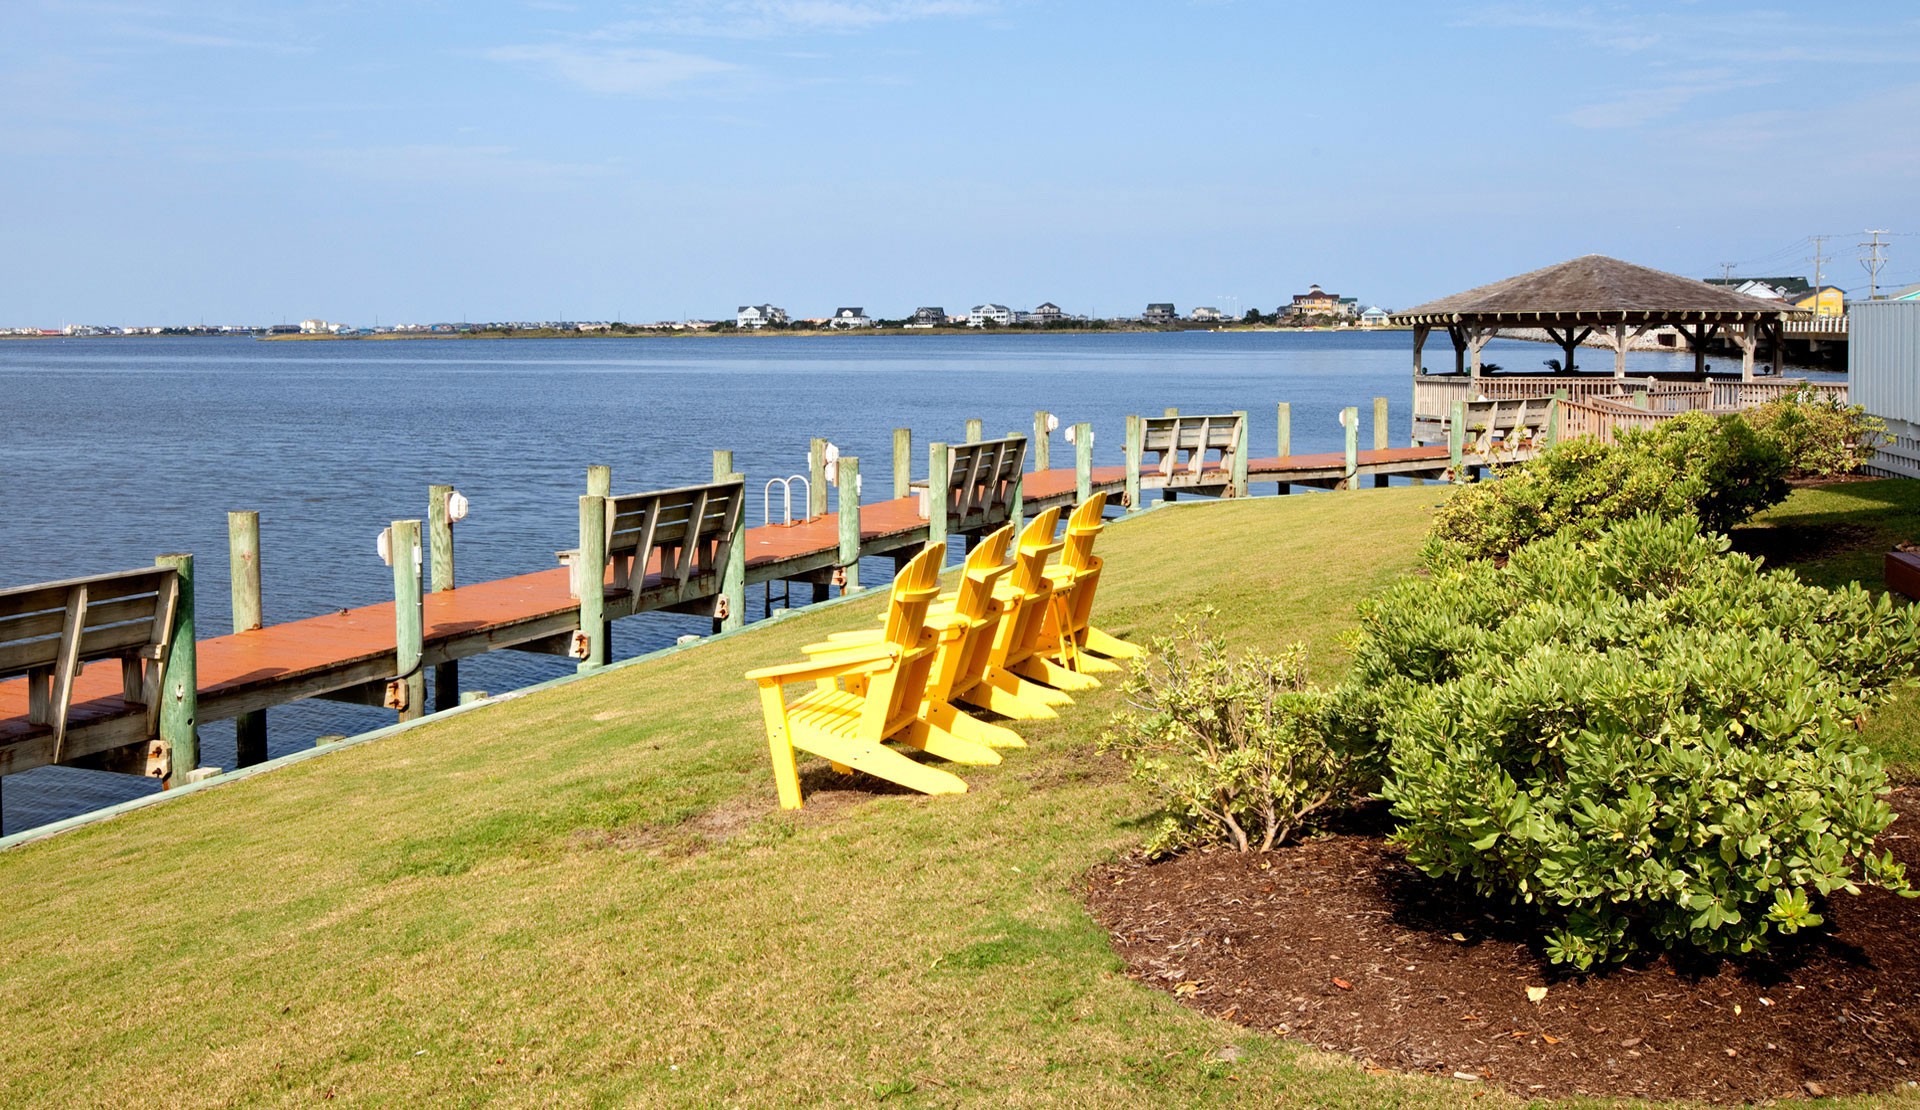 05-Yellow-chairs-soundview